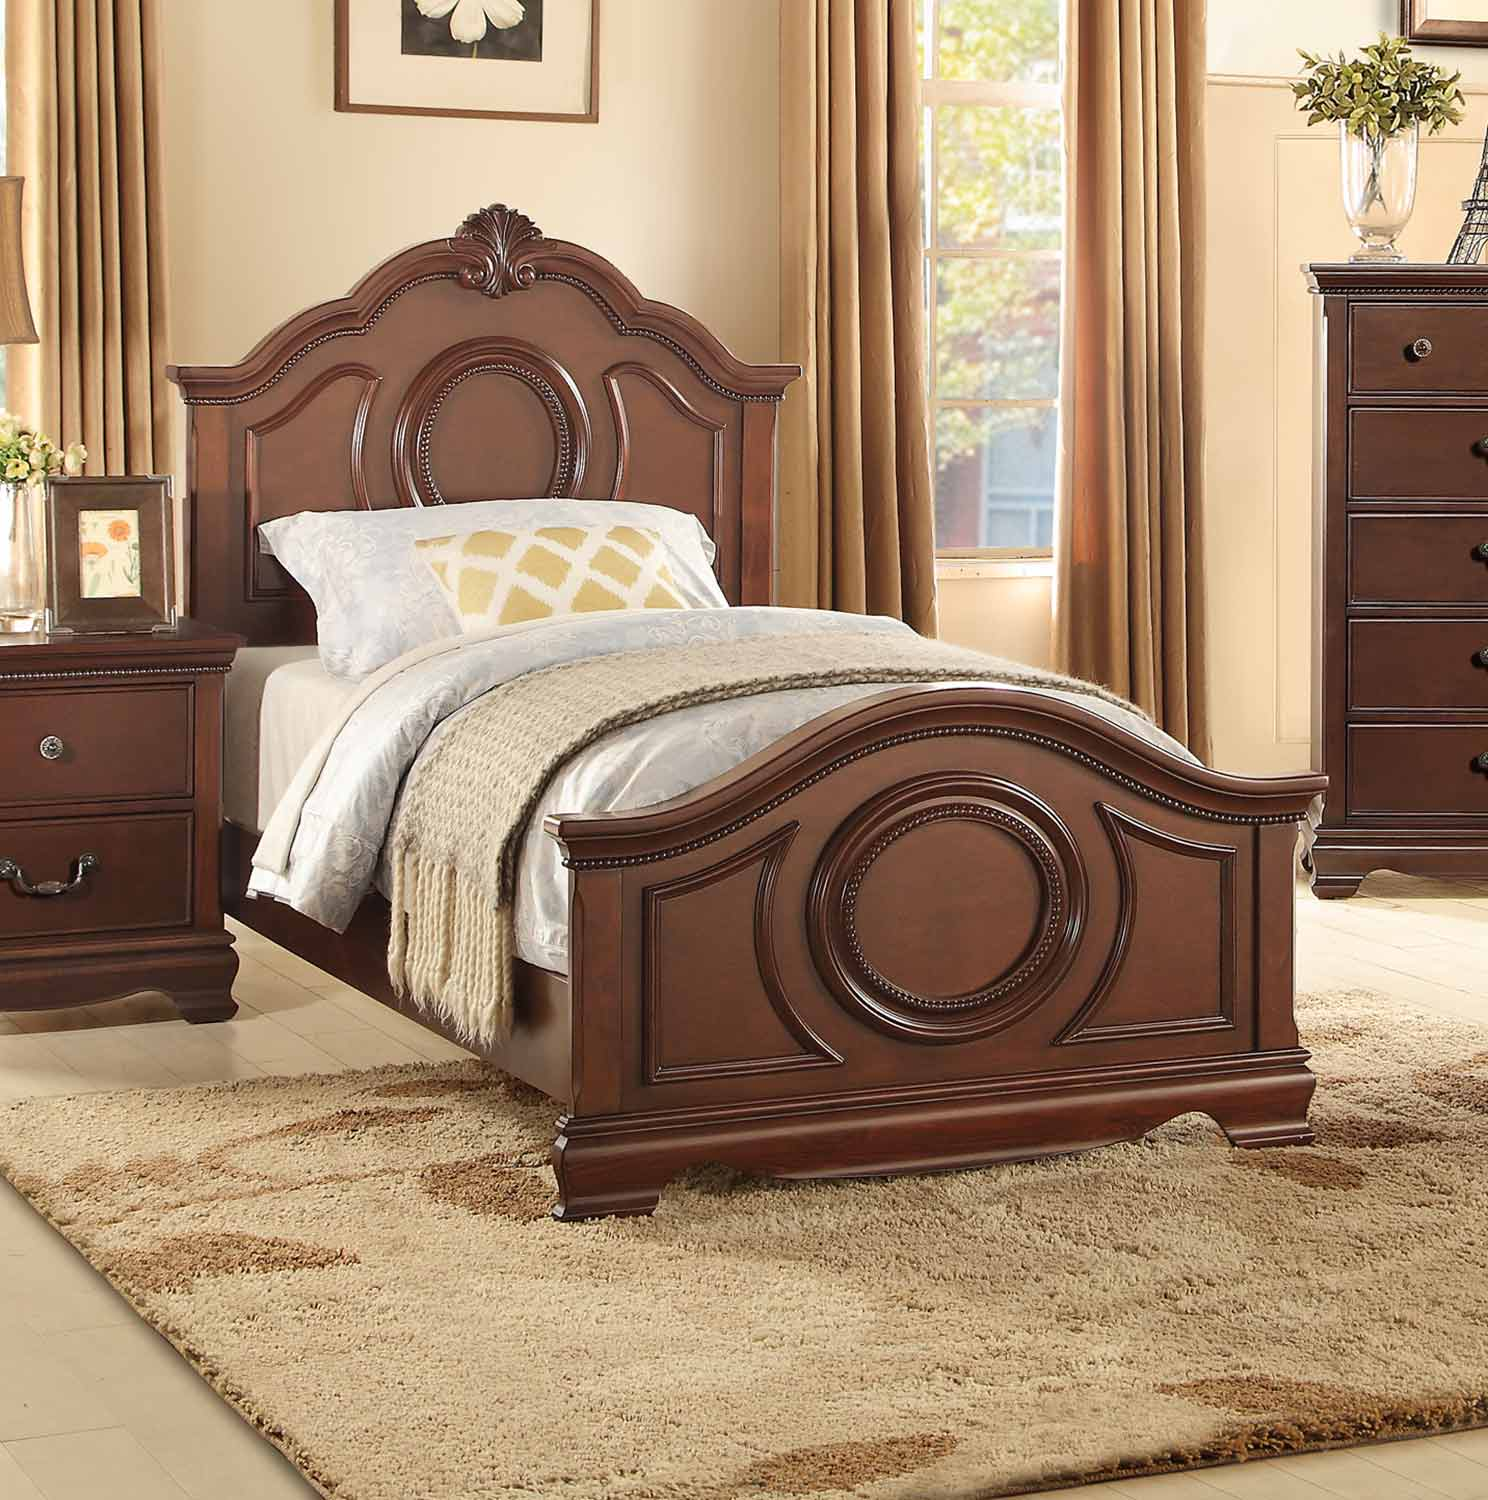 Homelegance Lucida Bed - Cherry